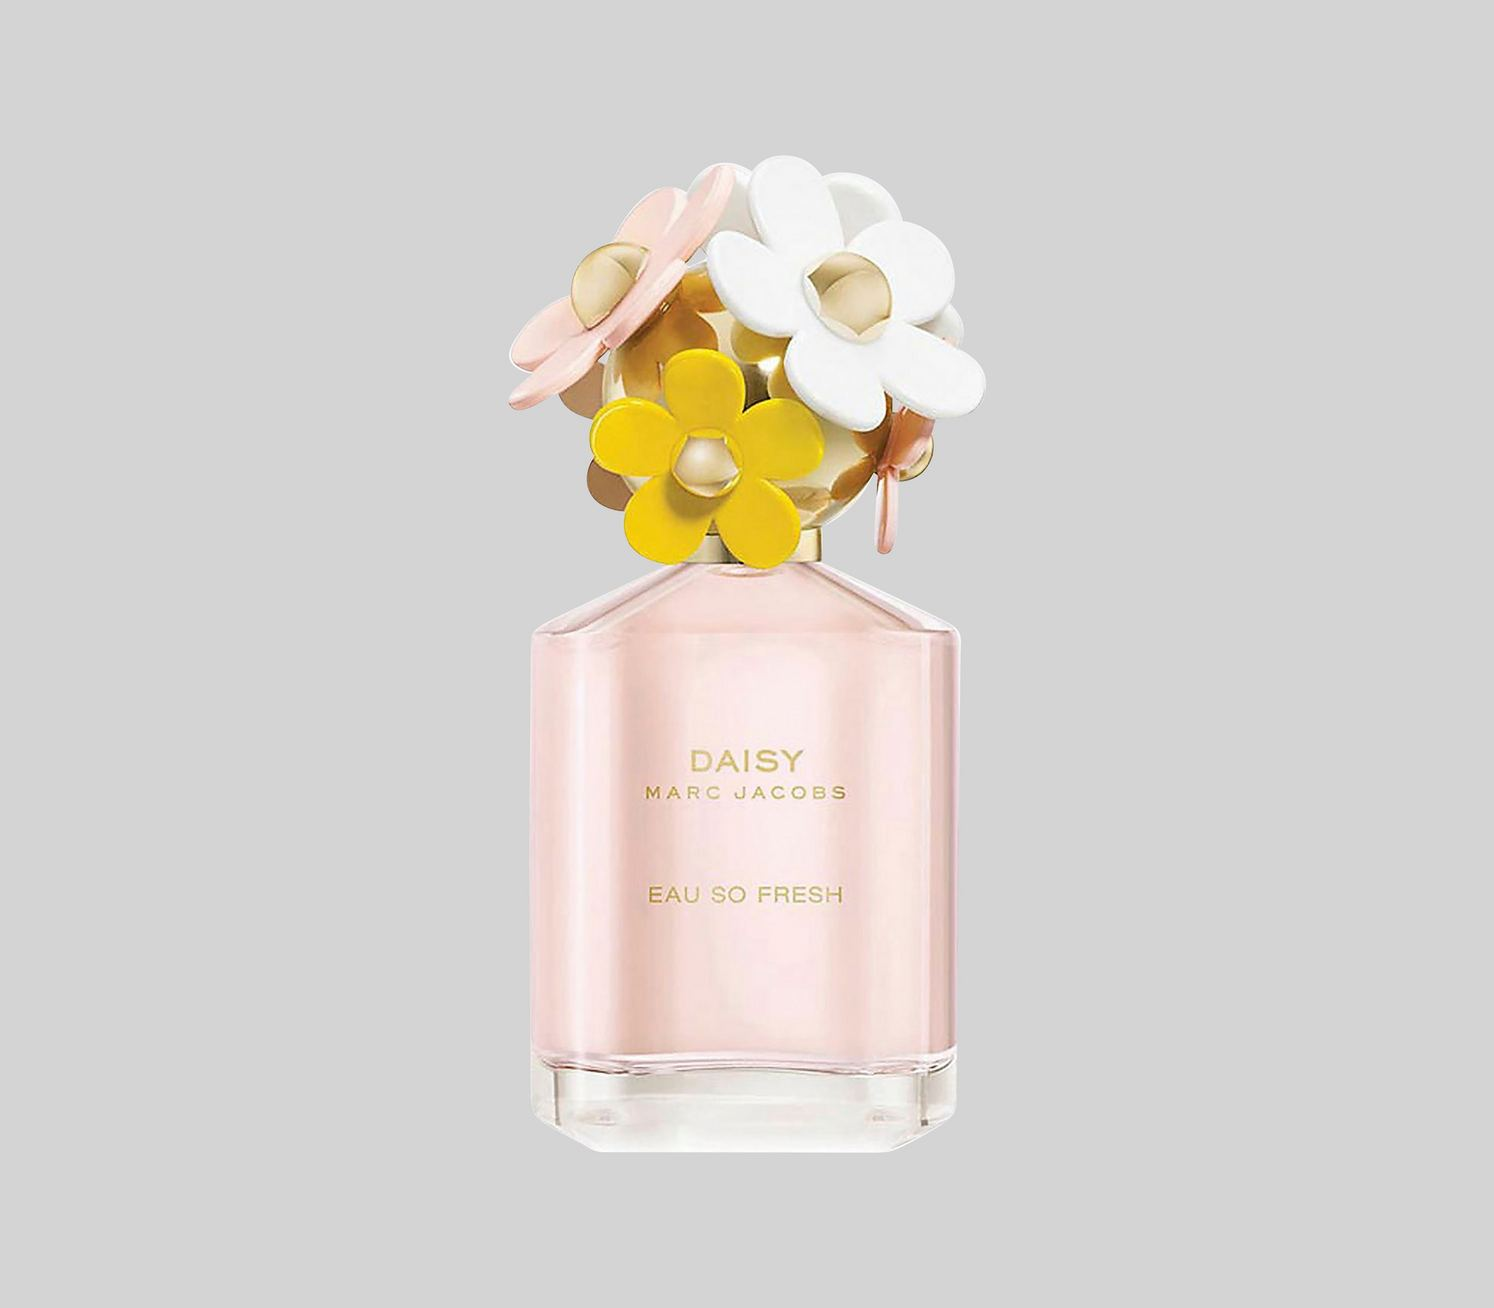 Marc Jacobs - Daisy Eau So Fresh 2.5 oz